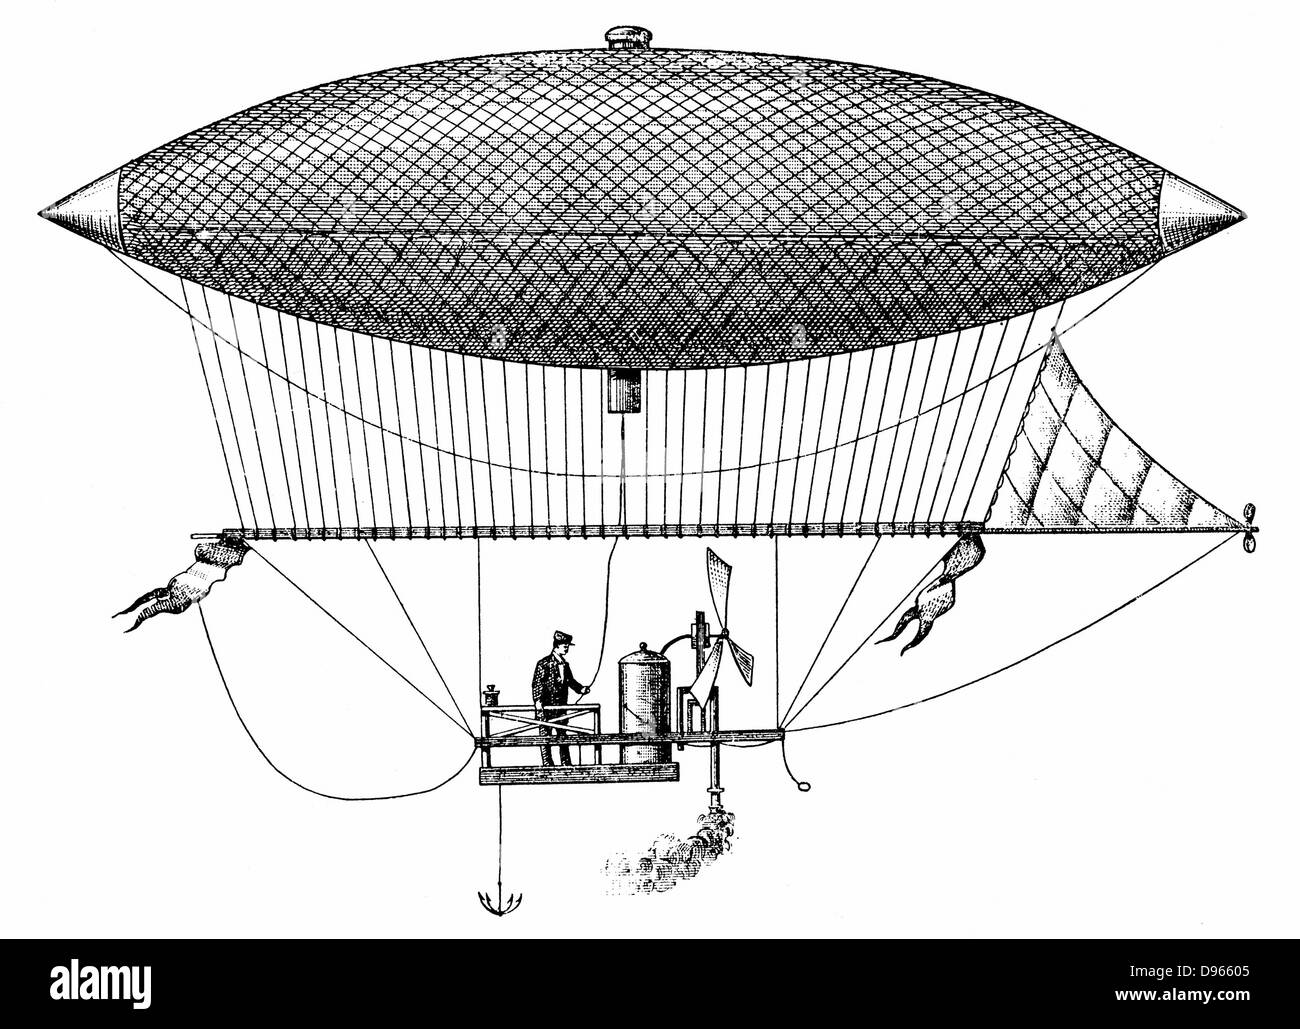 Henri Giffard's (1825-1882) steerable airship of 1852, the first dirigible. Engraving of 1903. - Stock Image